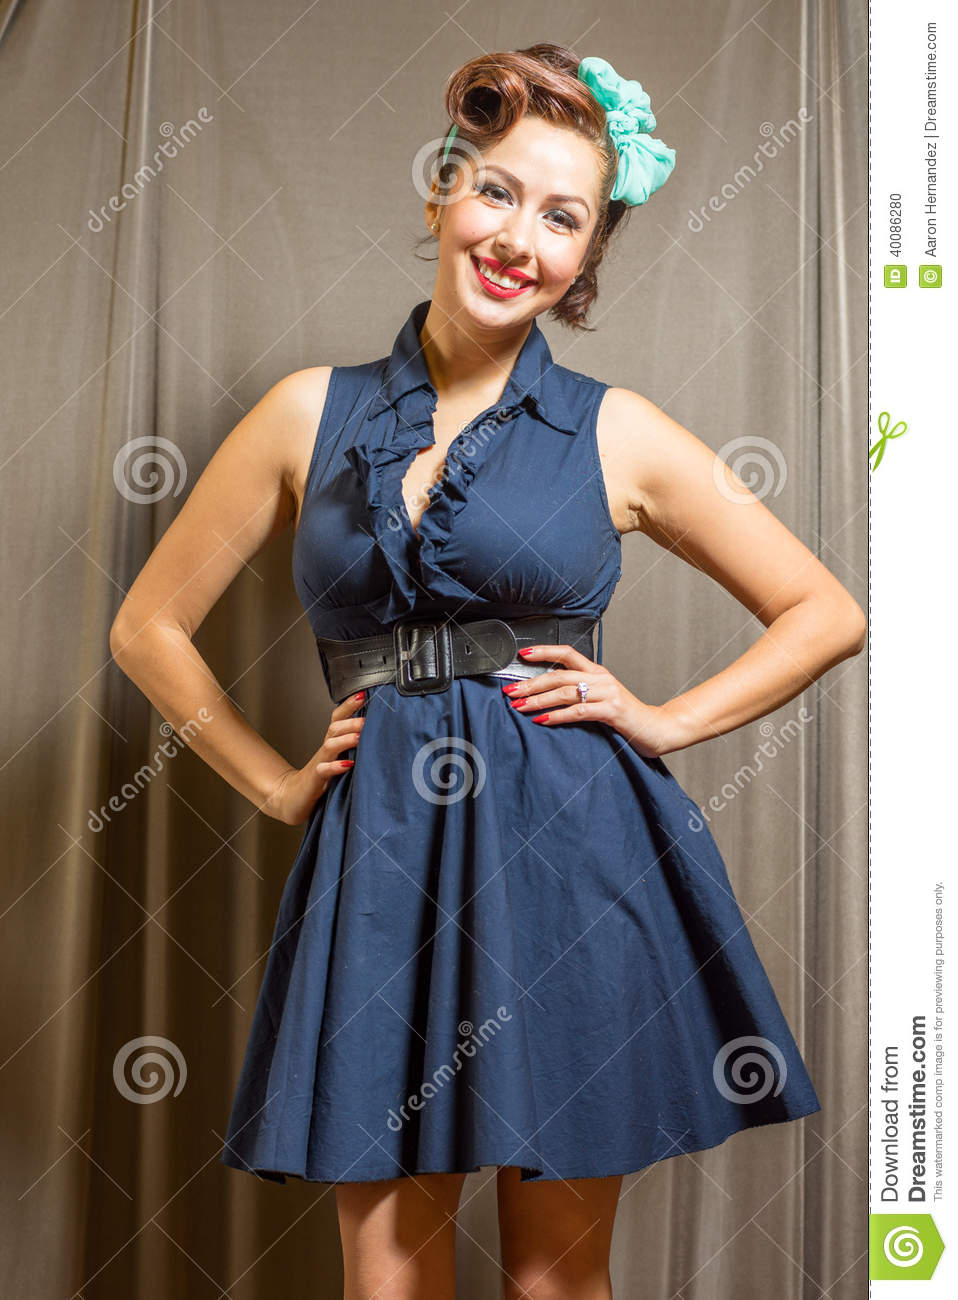 Female Beauty Inspired By Classic Era Stock Photo Image 40086280